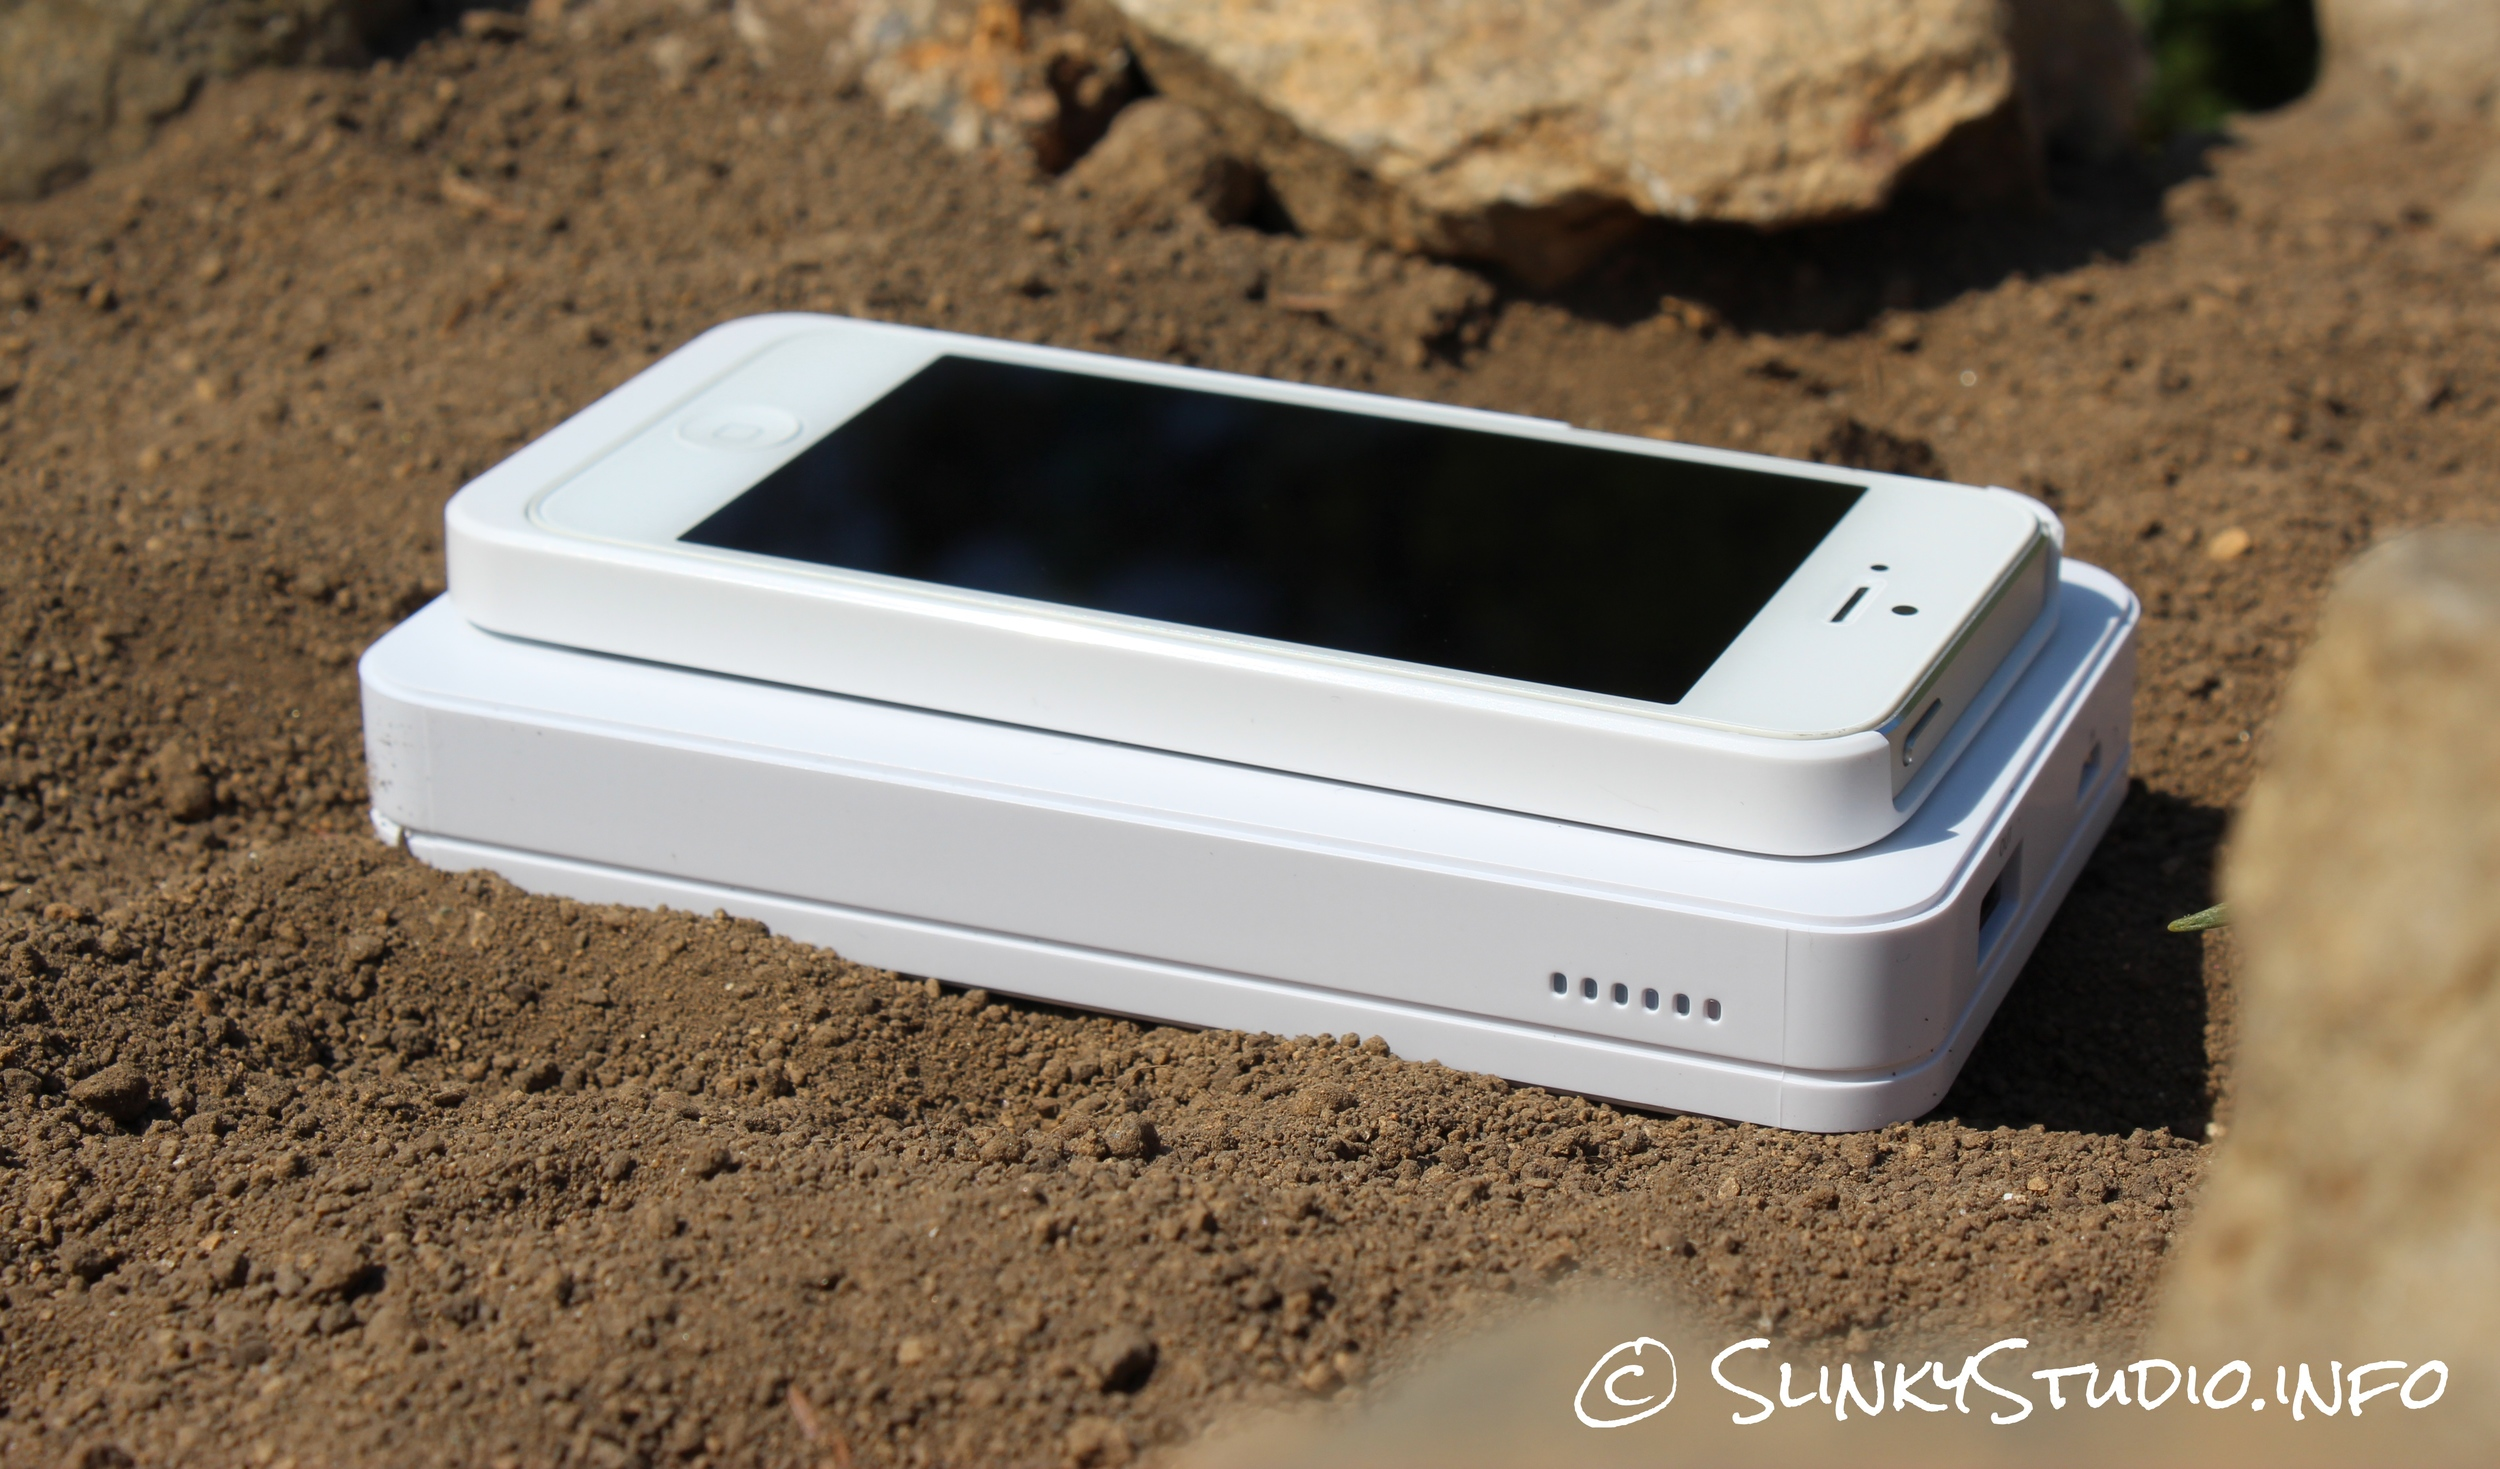 Xtorm Wireless Power Bank Side View Charging iPhone 5